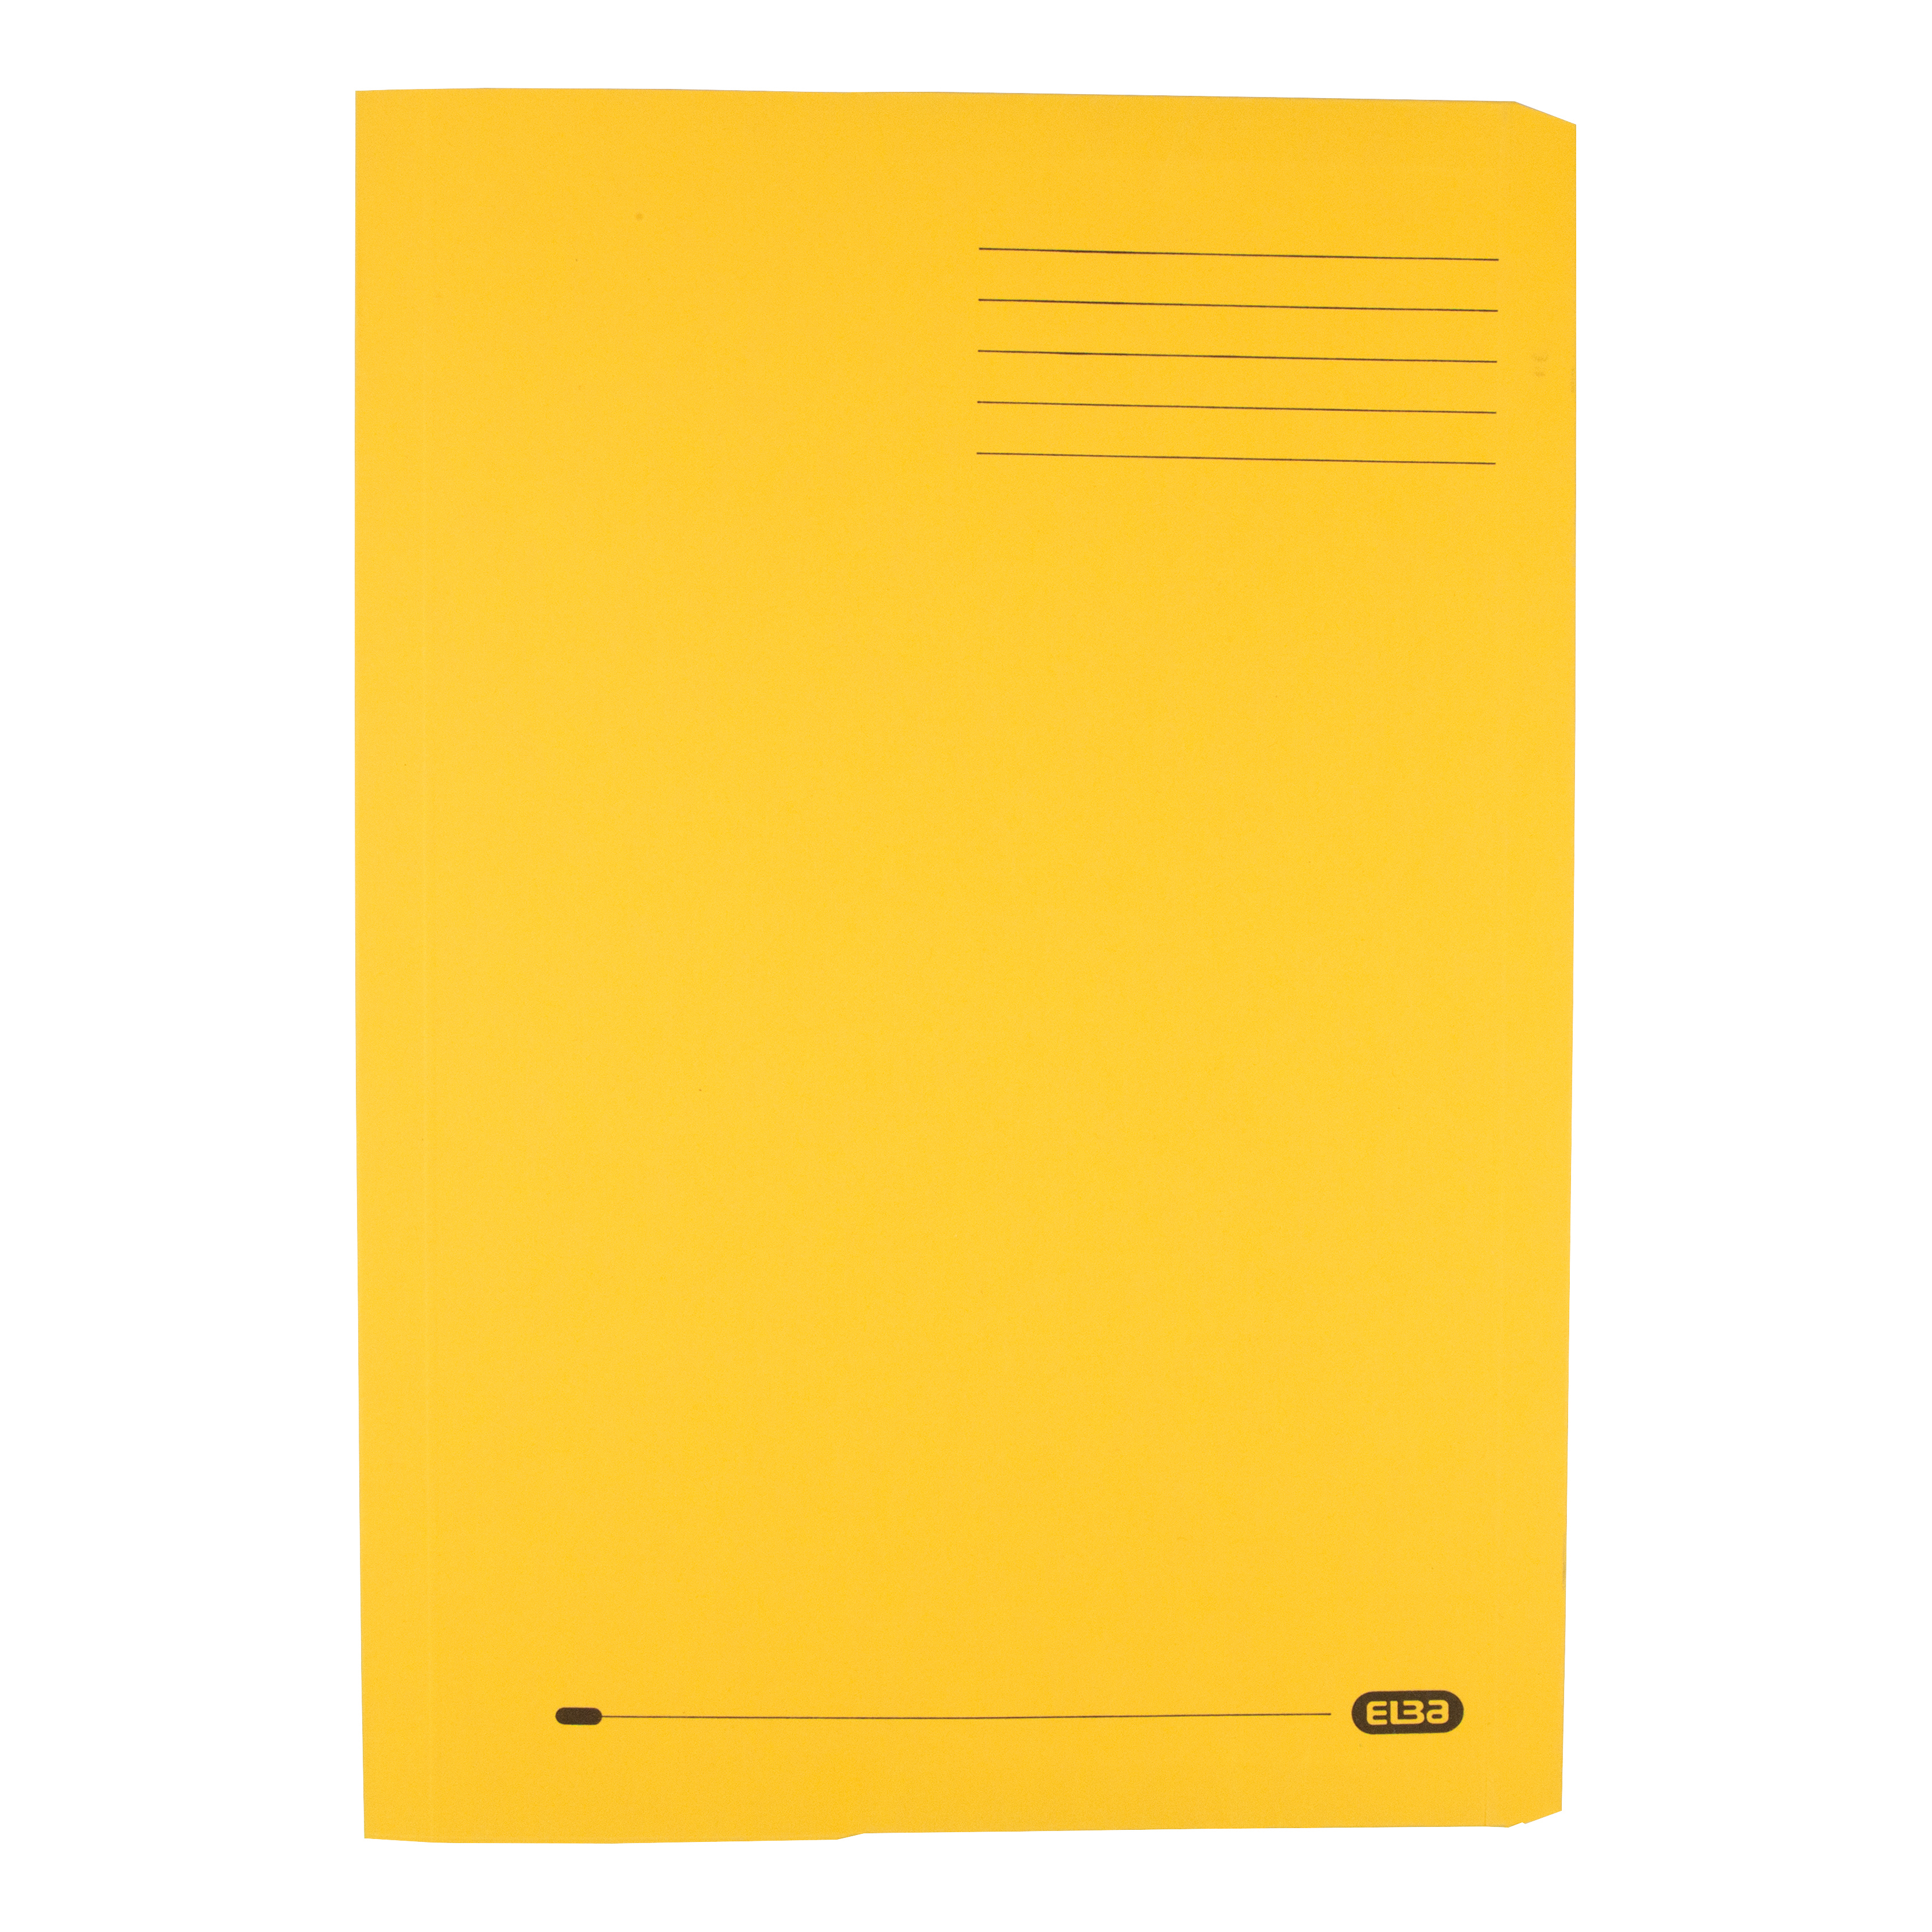 Elba Clifton Flat Bar Pocket (Rear) File 285gsm Capacity 50mm Foolscap Yellow Ref 100090180 Pack 25